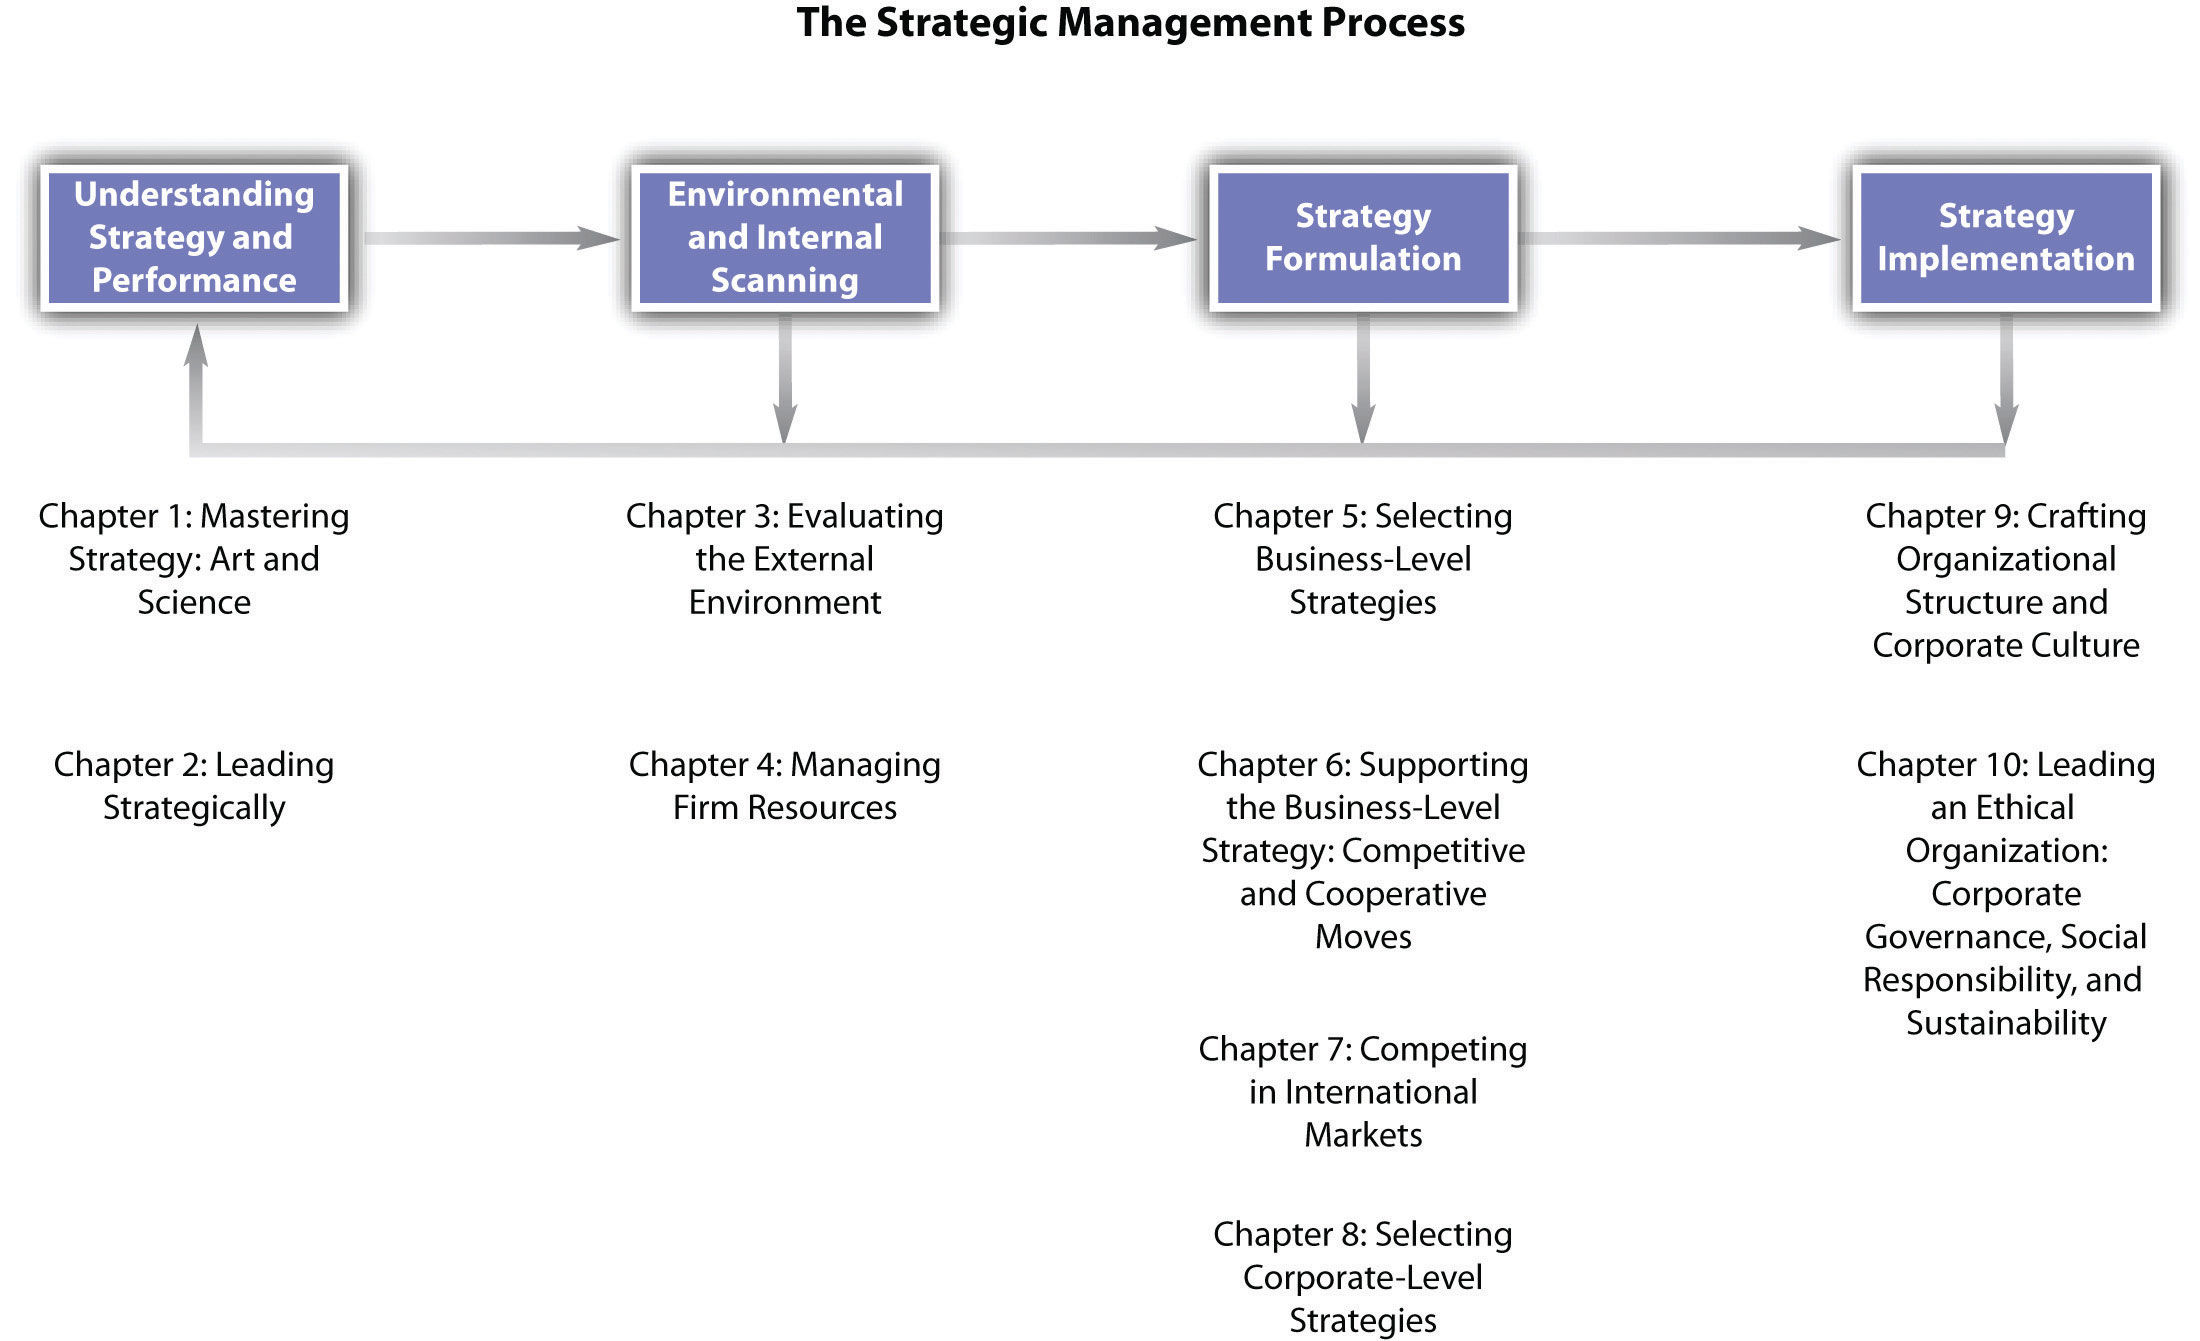 Understanding The Strategic Management Process